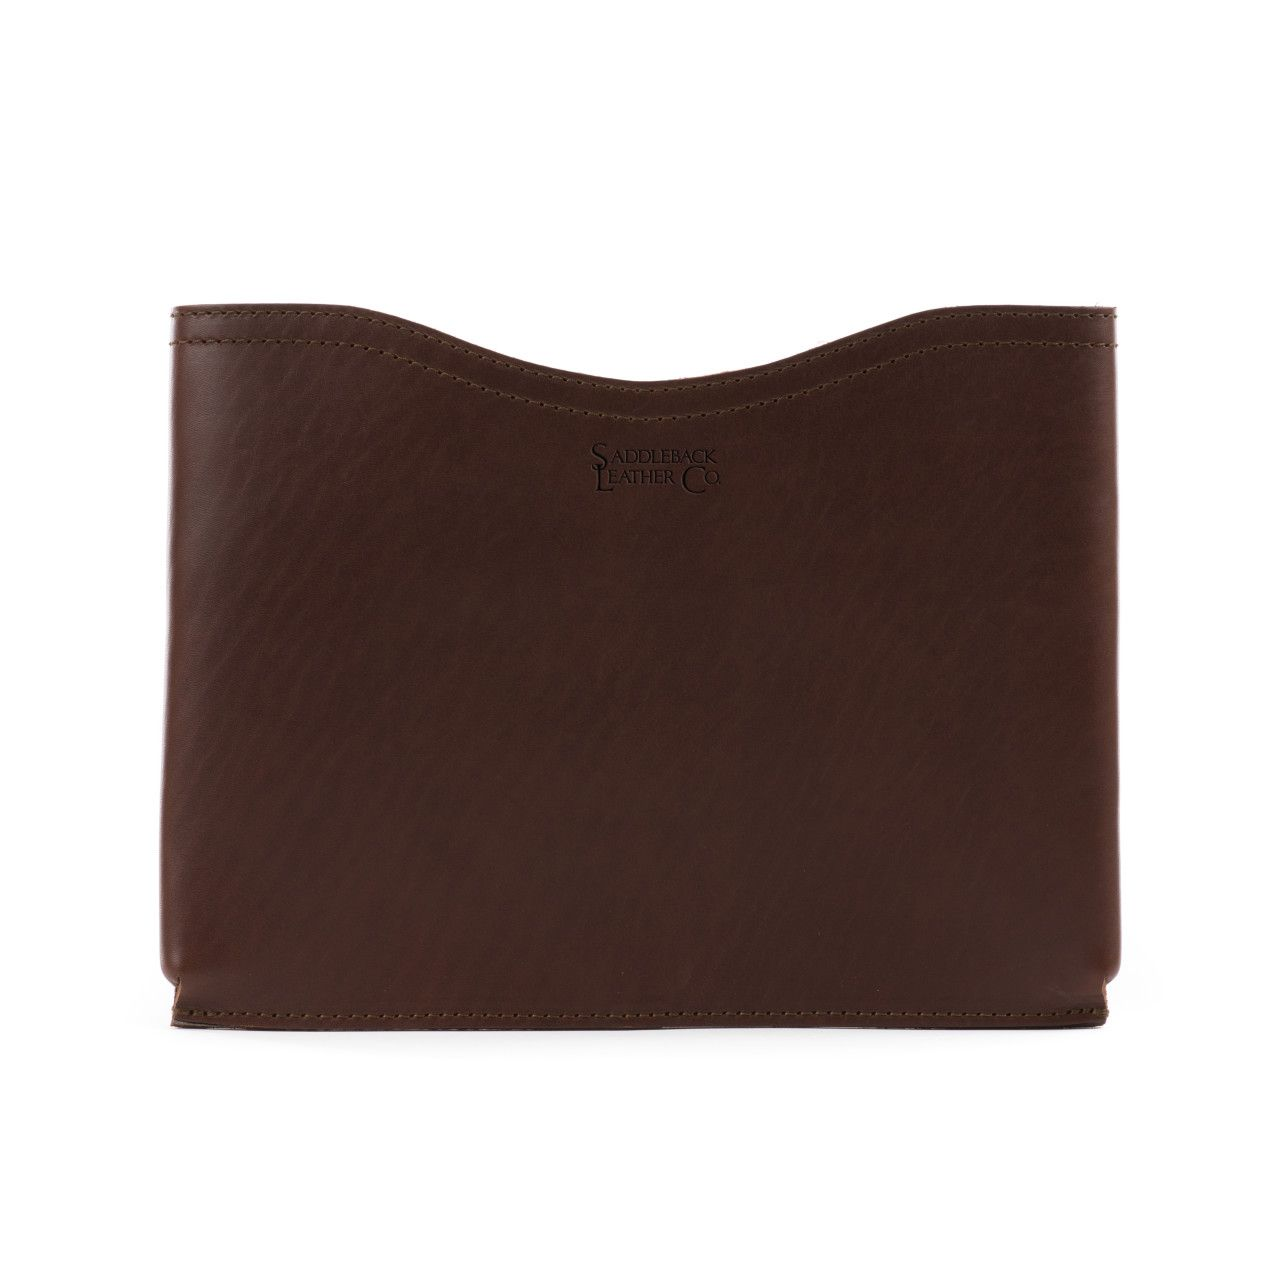 macbook pro leather sleeve small in chestnut leather